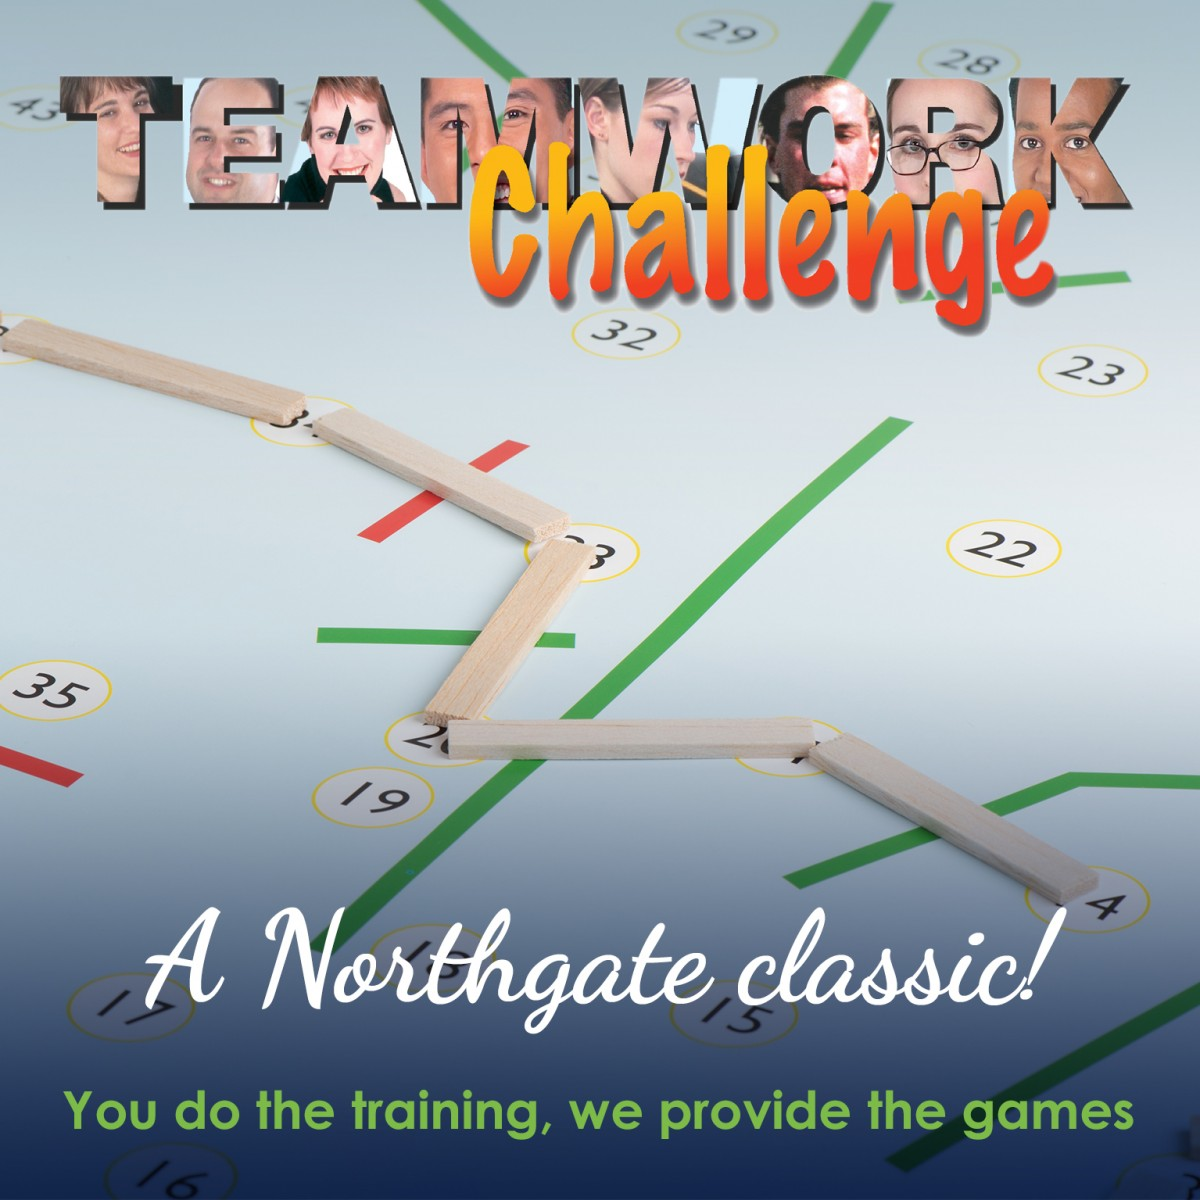 Teamwork Challenge| Teamwork Training Activity